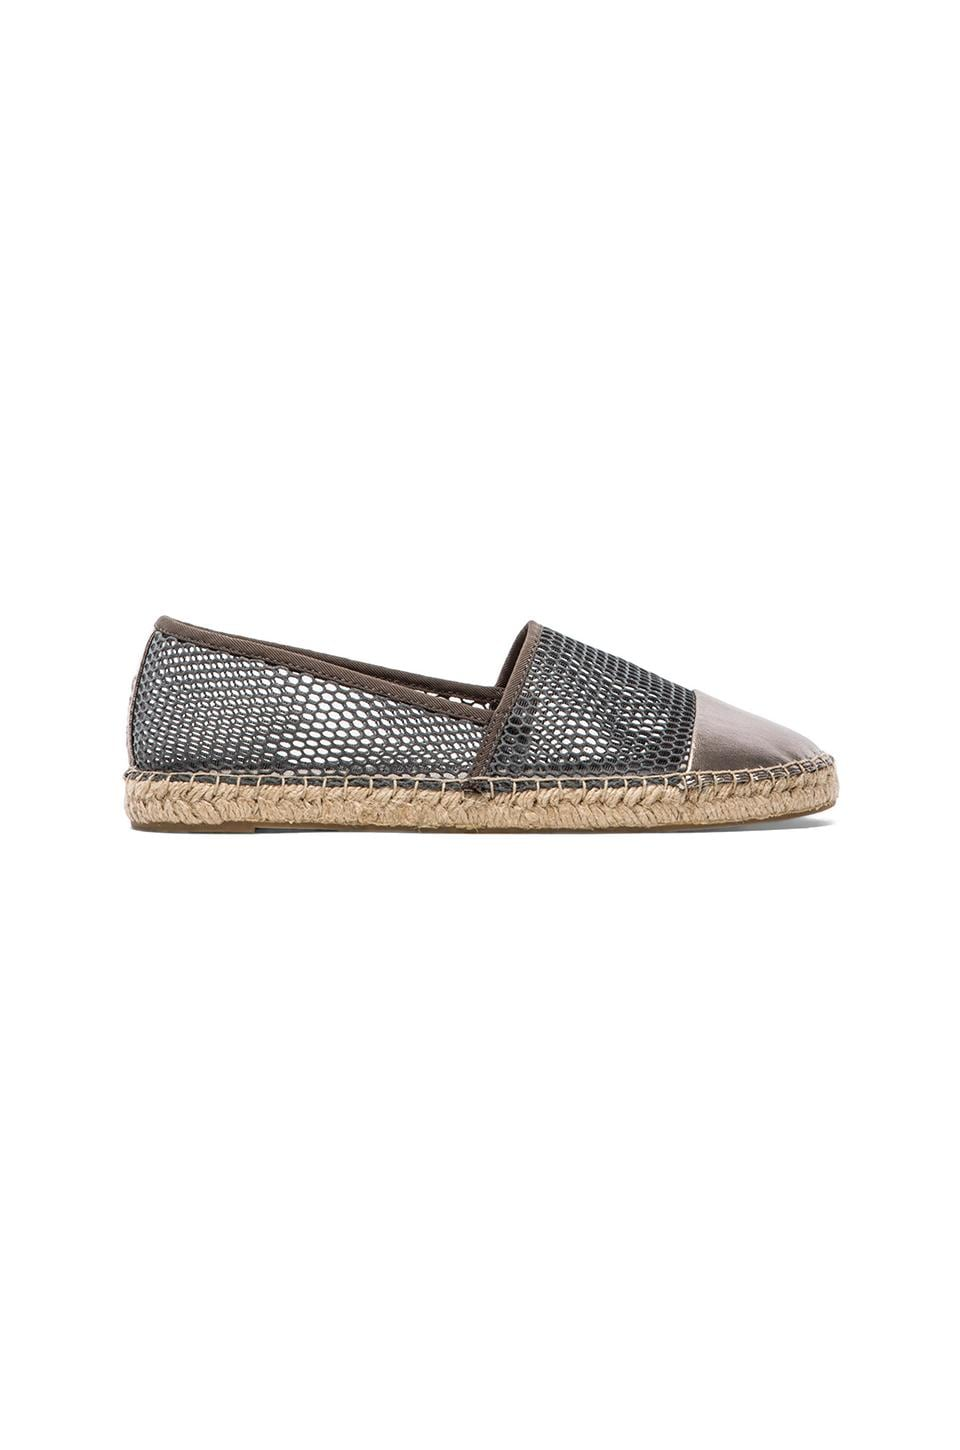 Circus by Sam Edelman Lena Flat in Storm Grey & Mercury